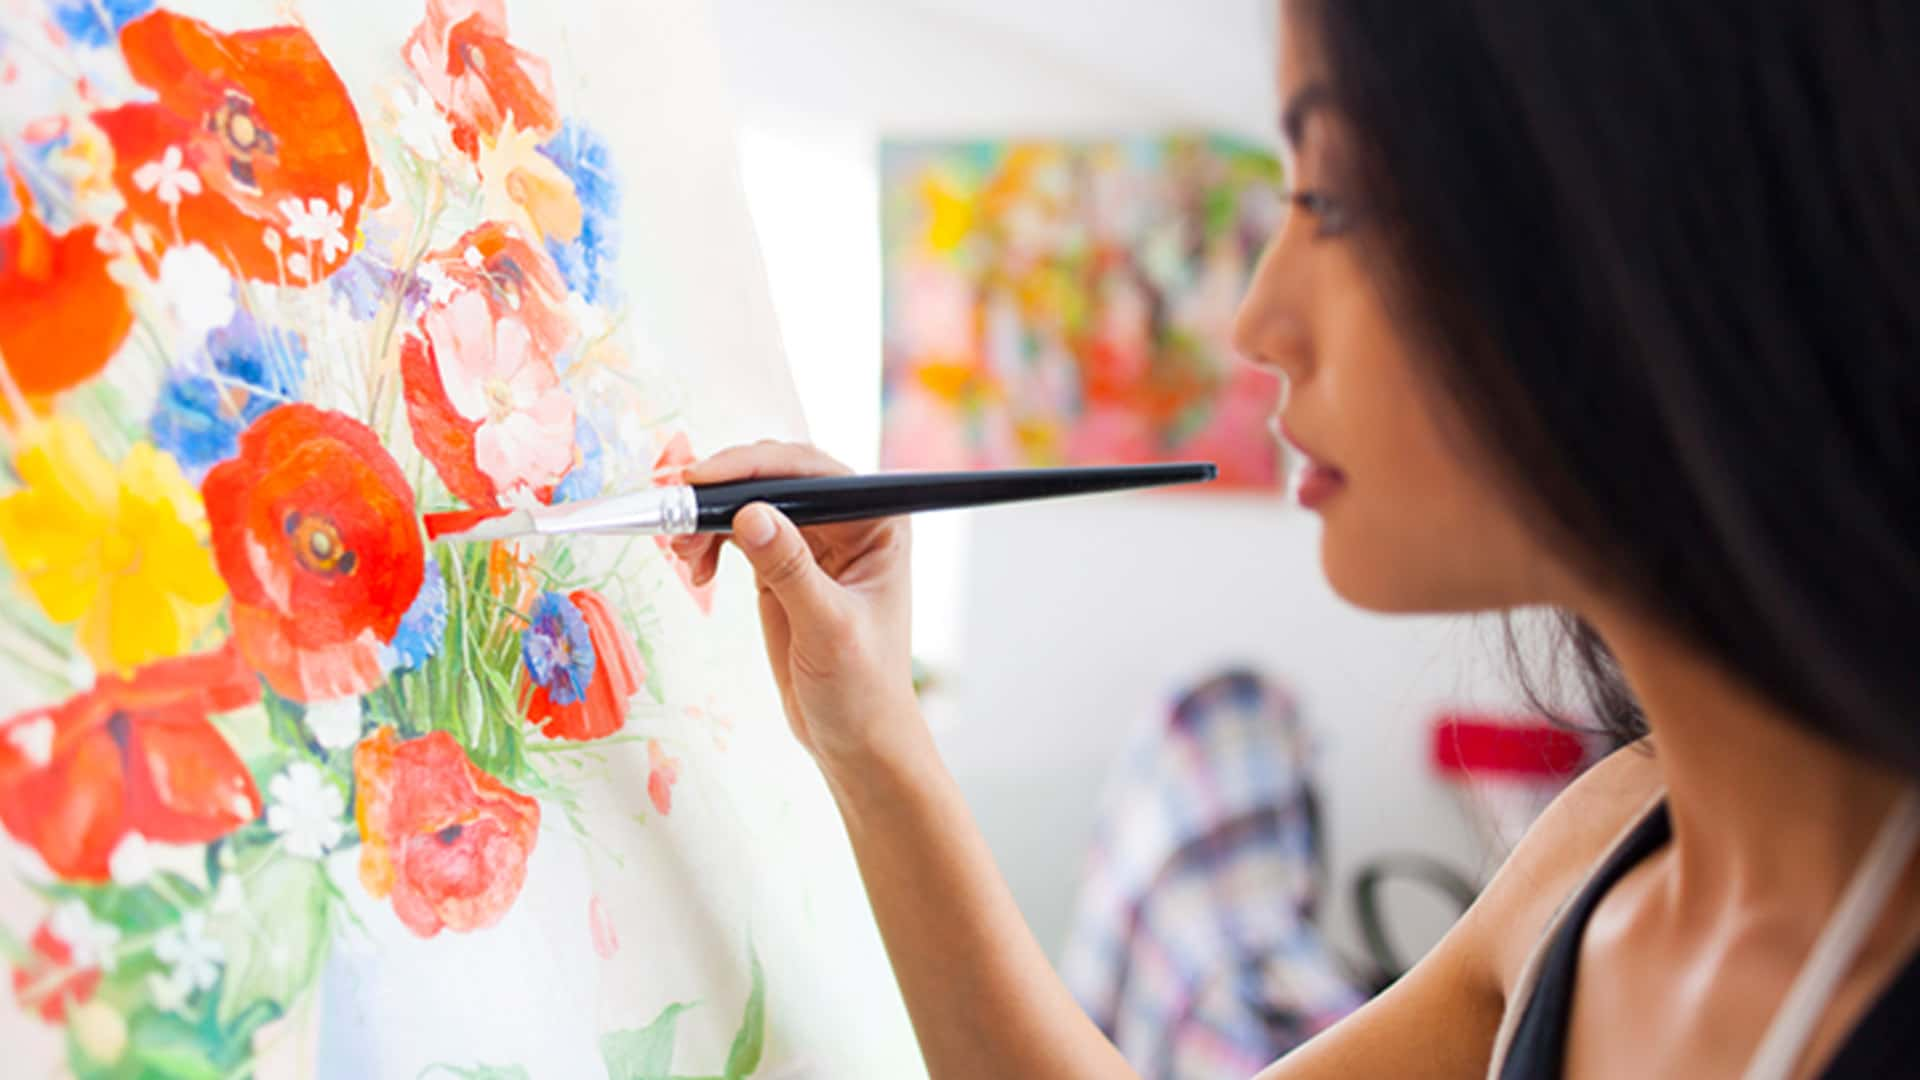 How to Become an Artist | Career Girls - Explore Careers